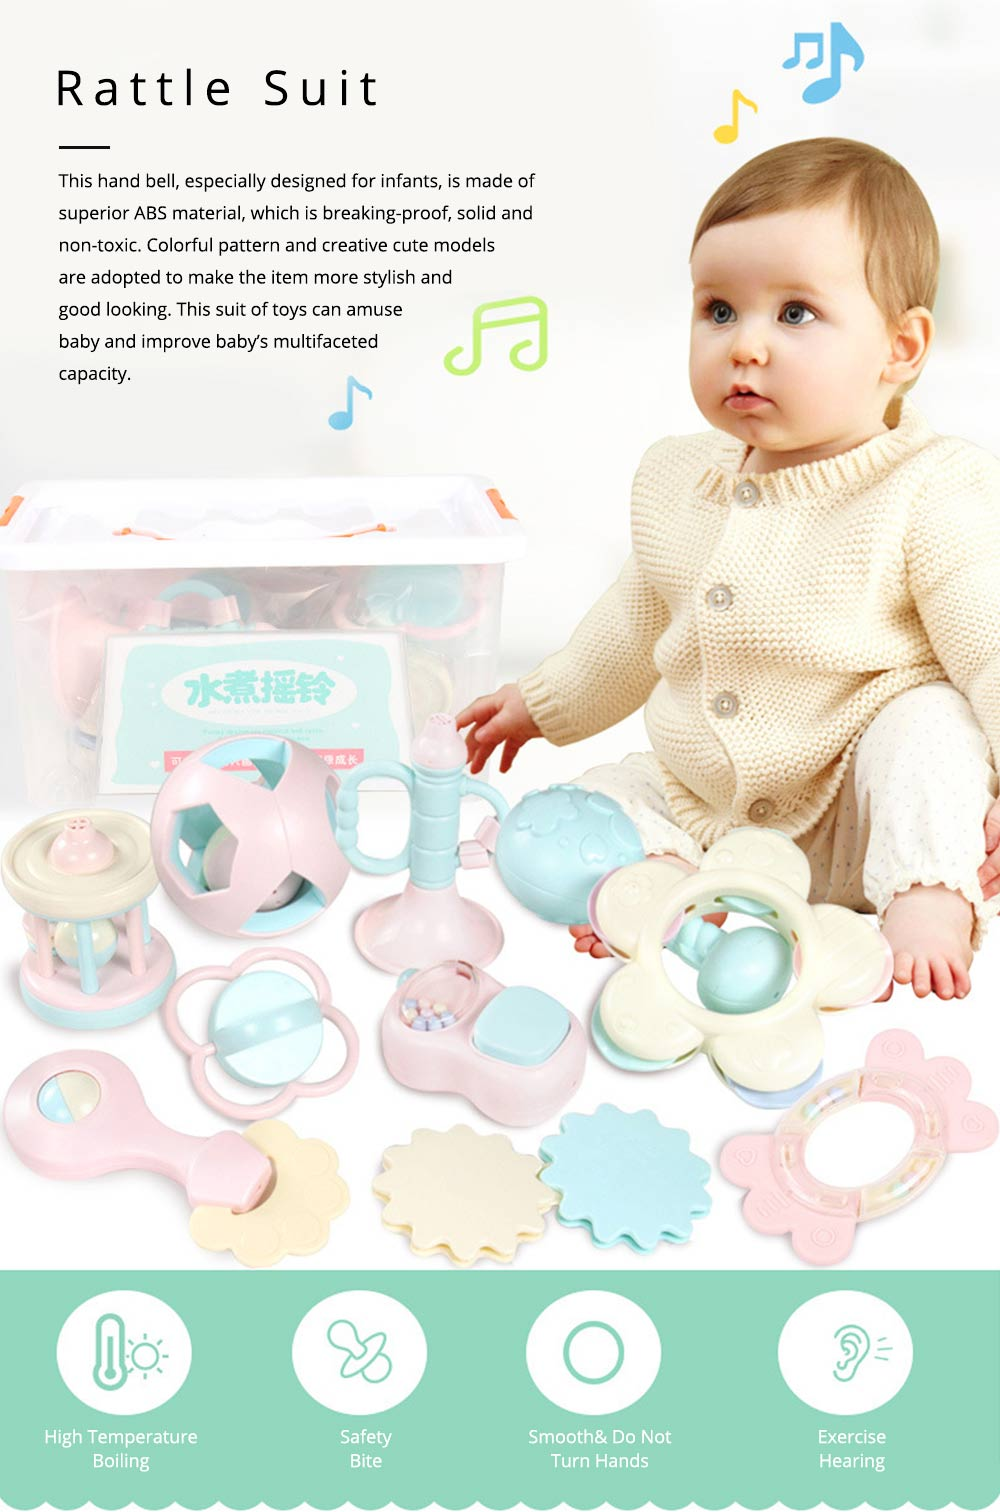 Cute Fancy Rattle 5PCS 8PCS 10PCS Suit for Infants, Durable ABS New-born Baby Hand Bell Puzzle Toy, Can Be Boiled 0